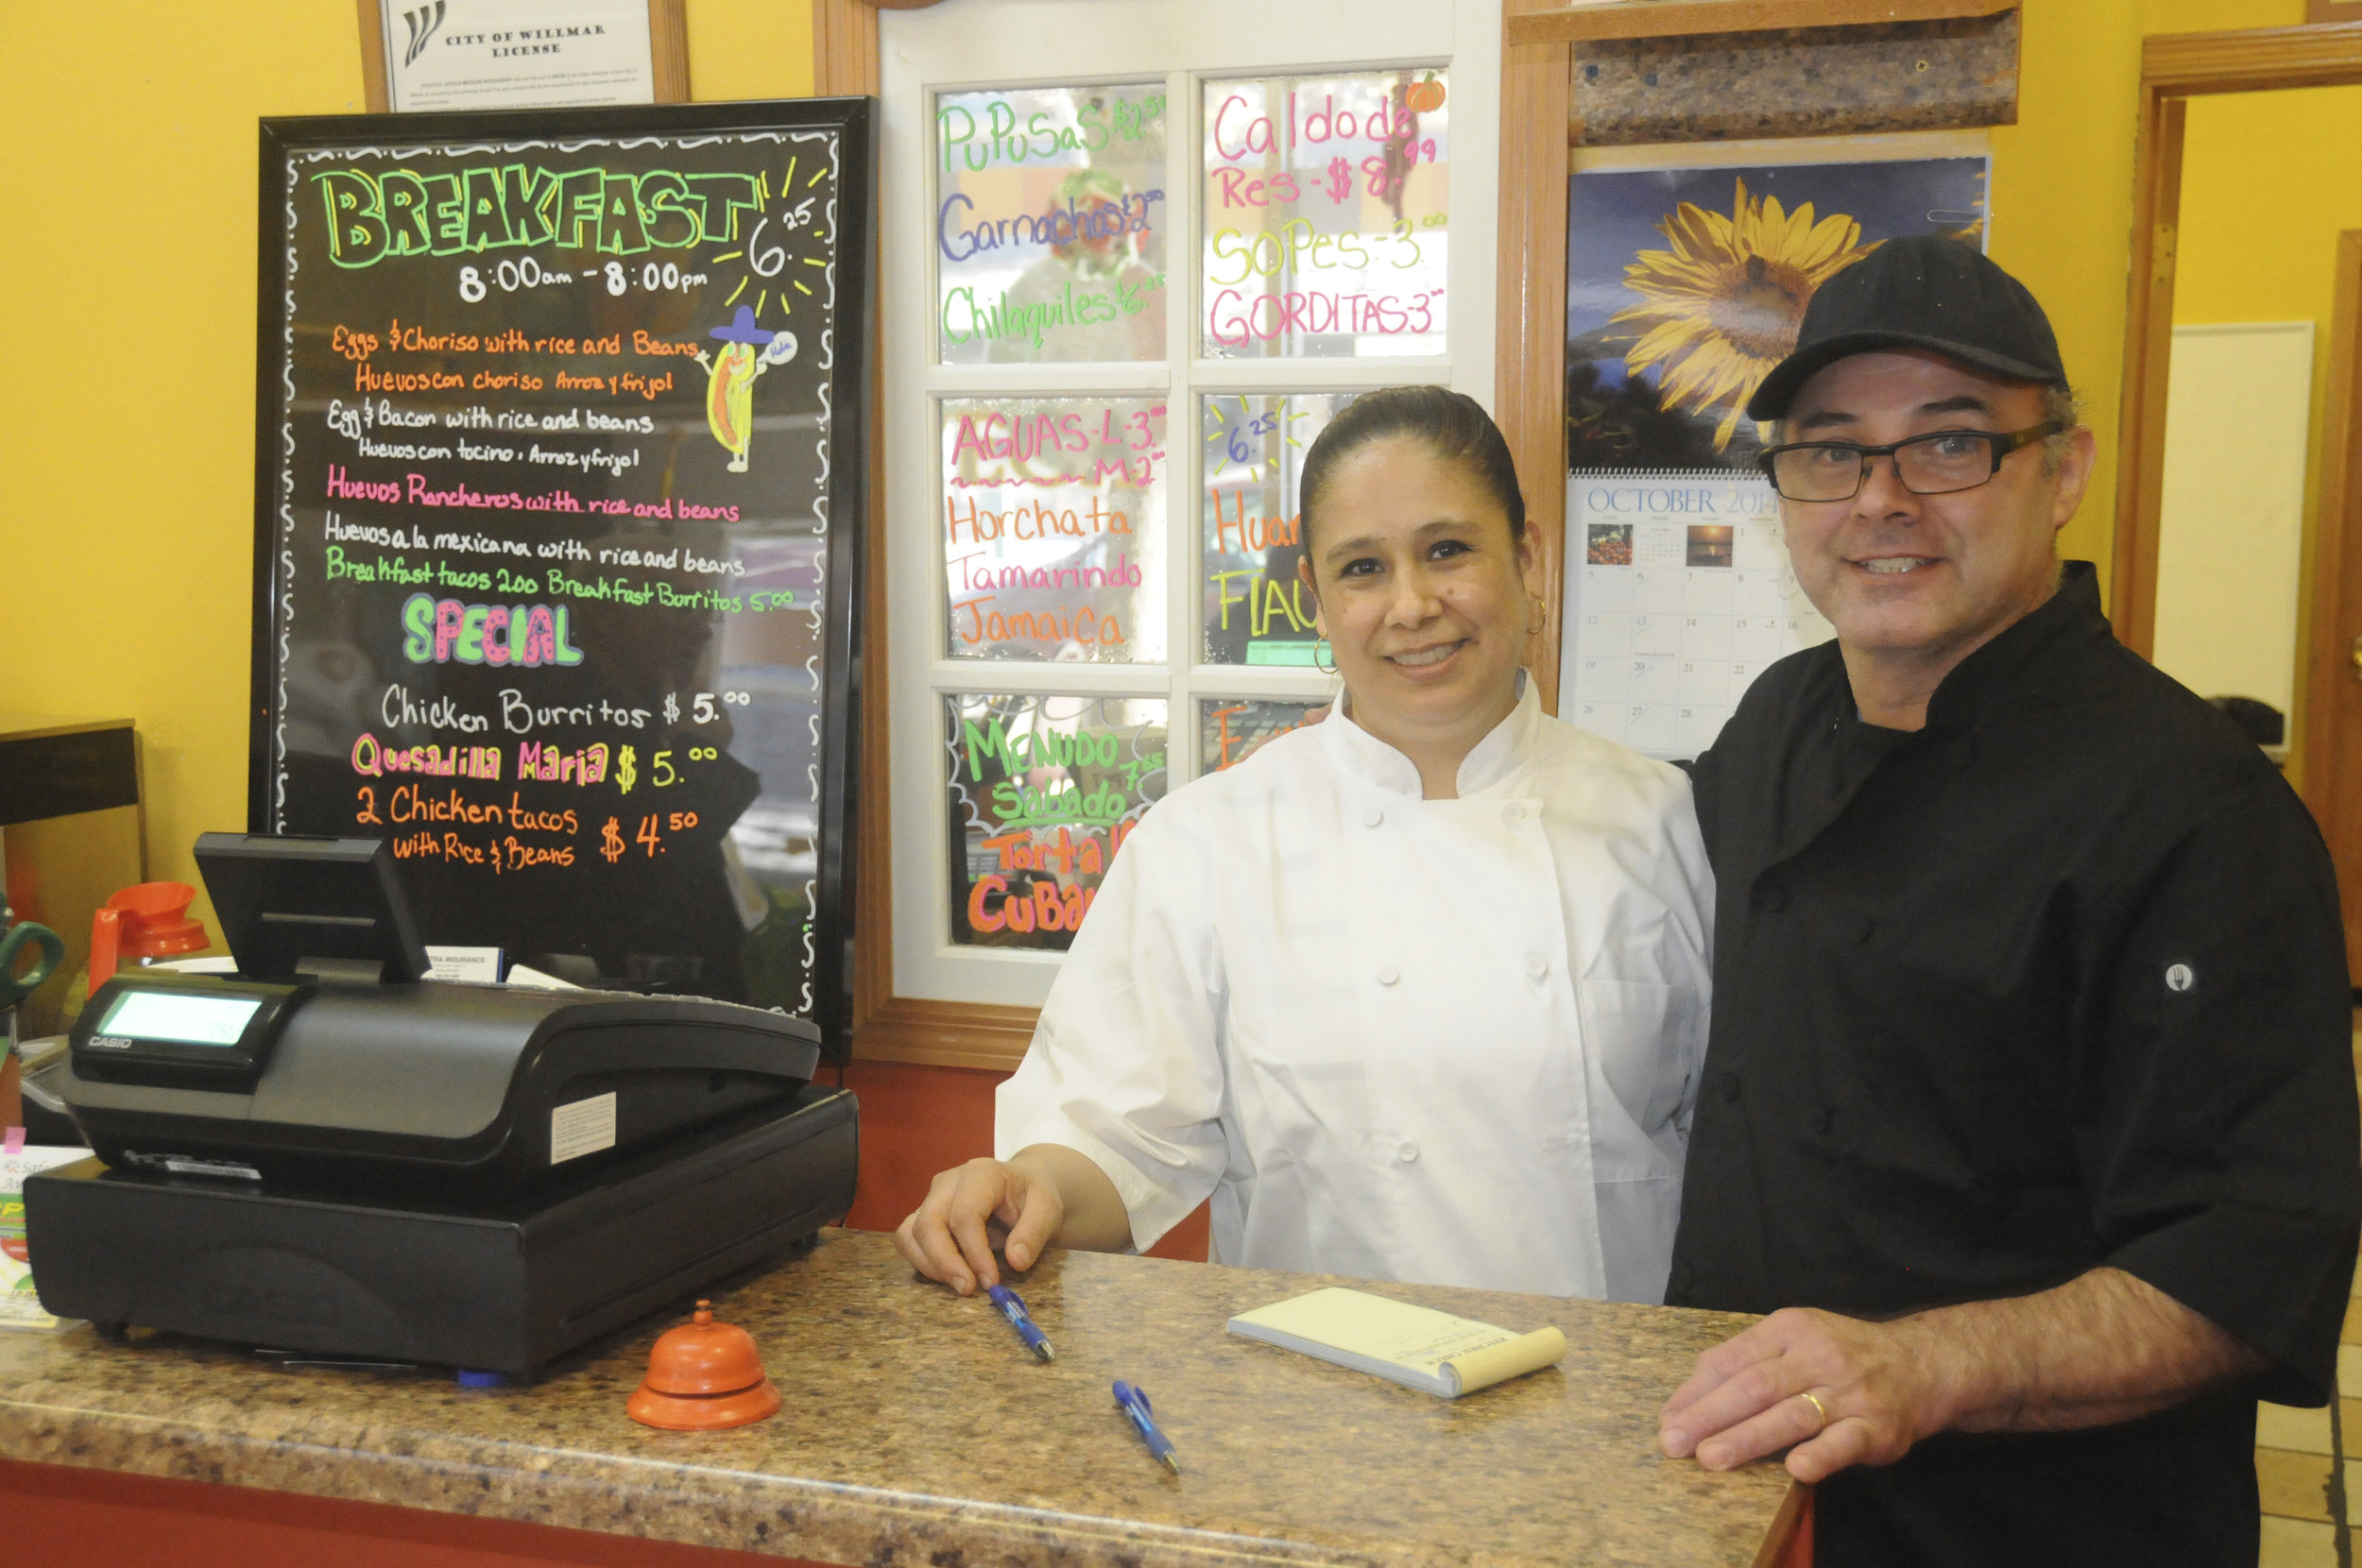 Guillermina Serrano and her husband, Salvador, stand behind the counter of Azteca Mexican Restaurant on Fourth St. SW in downtown Willmar on Oct. 14. The couple operates the restaurant with two children, Guillermo and Ana. To ensure the success of their fledgling restaurant, the family receives subsidized rent and business advice from the Willmar Area Multicultural Business Center. WAM-BC, in turn, receives financial support from the Catholic Campaign for Human Development.                                (Photo by Dan Rossini)